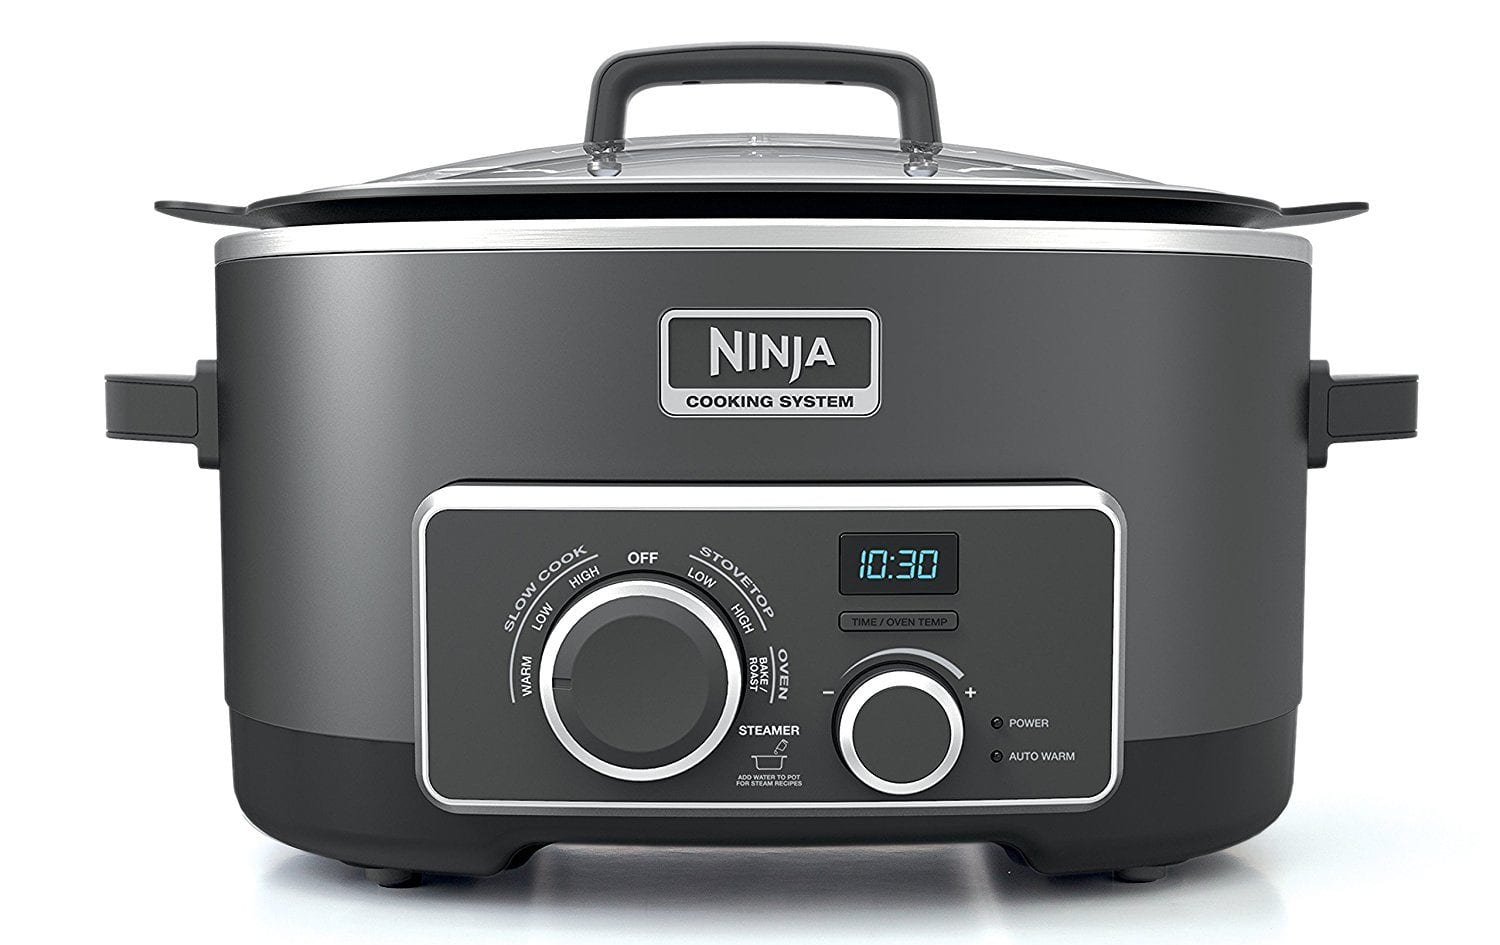 Best Slow Cookers 2017: New Ninja 4-in-1 Slow Cooker 2018